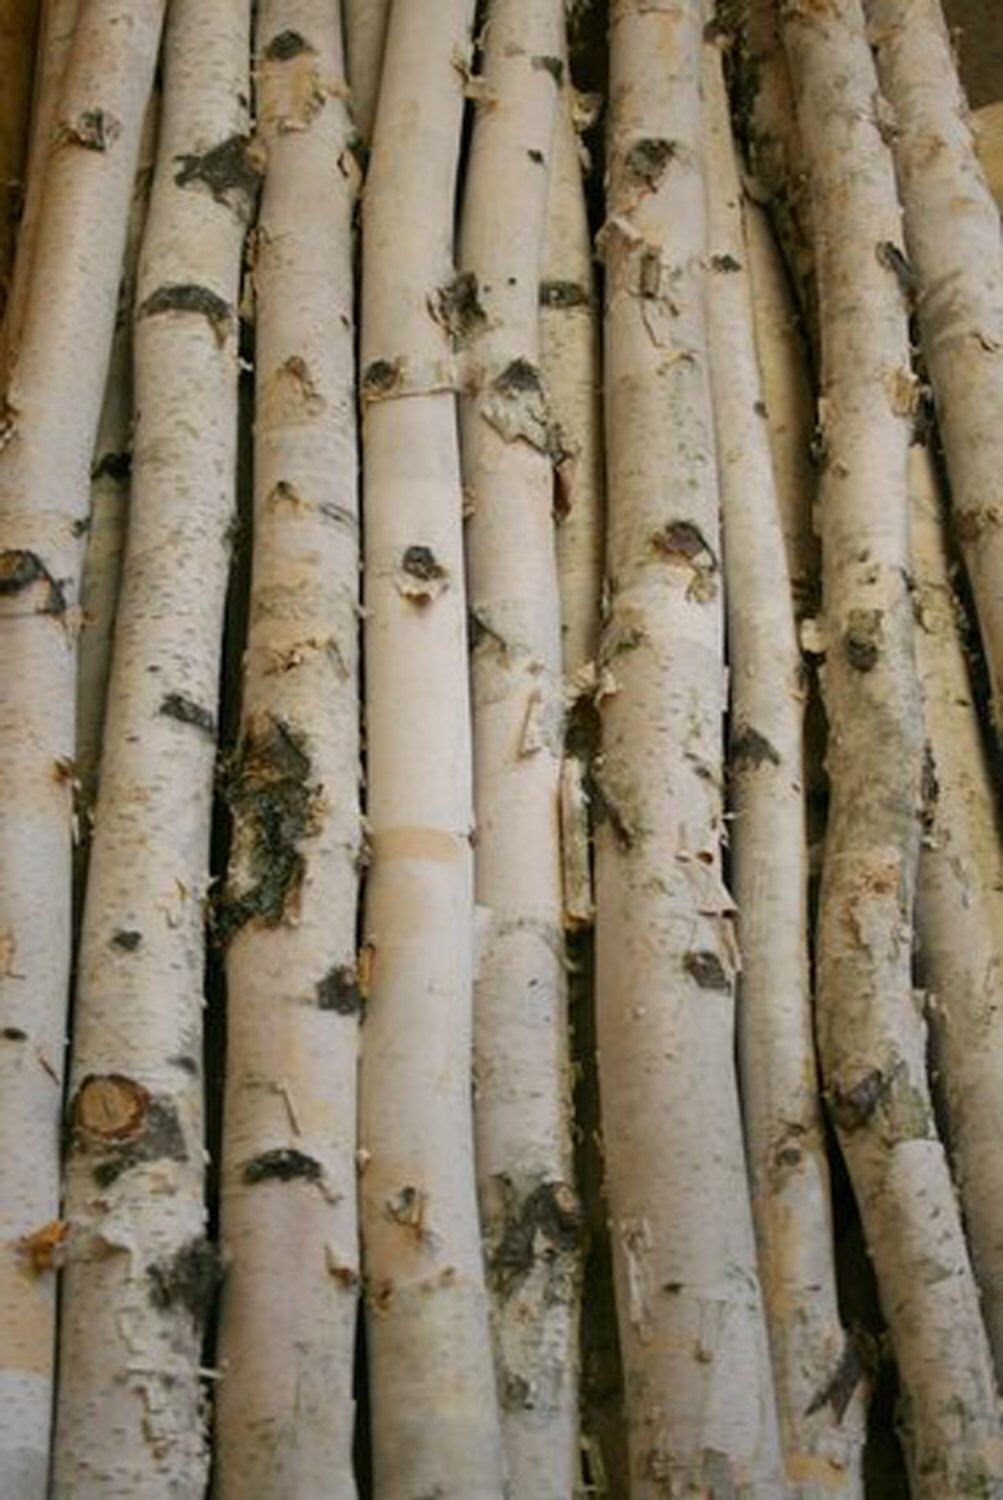 White Birch Poles Birch Branches Birch Logs Birch